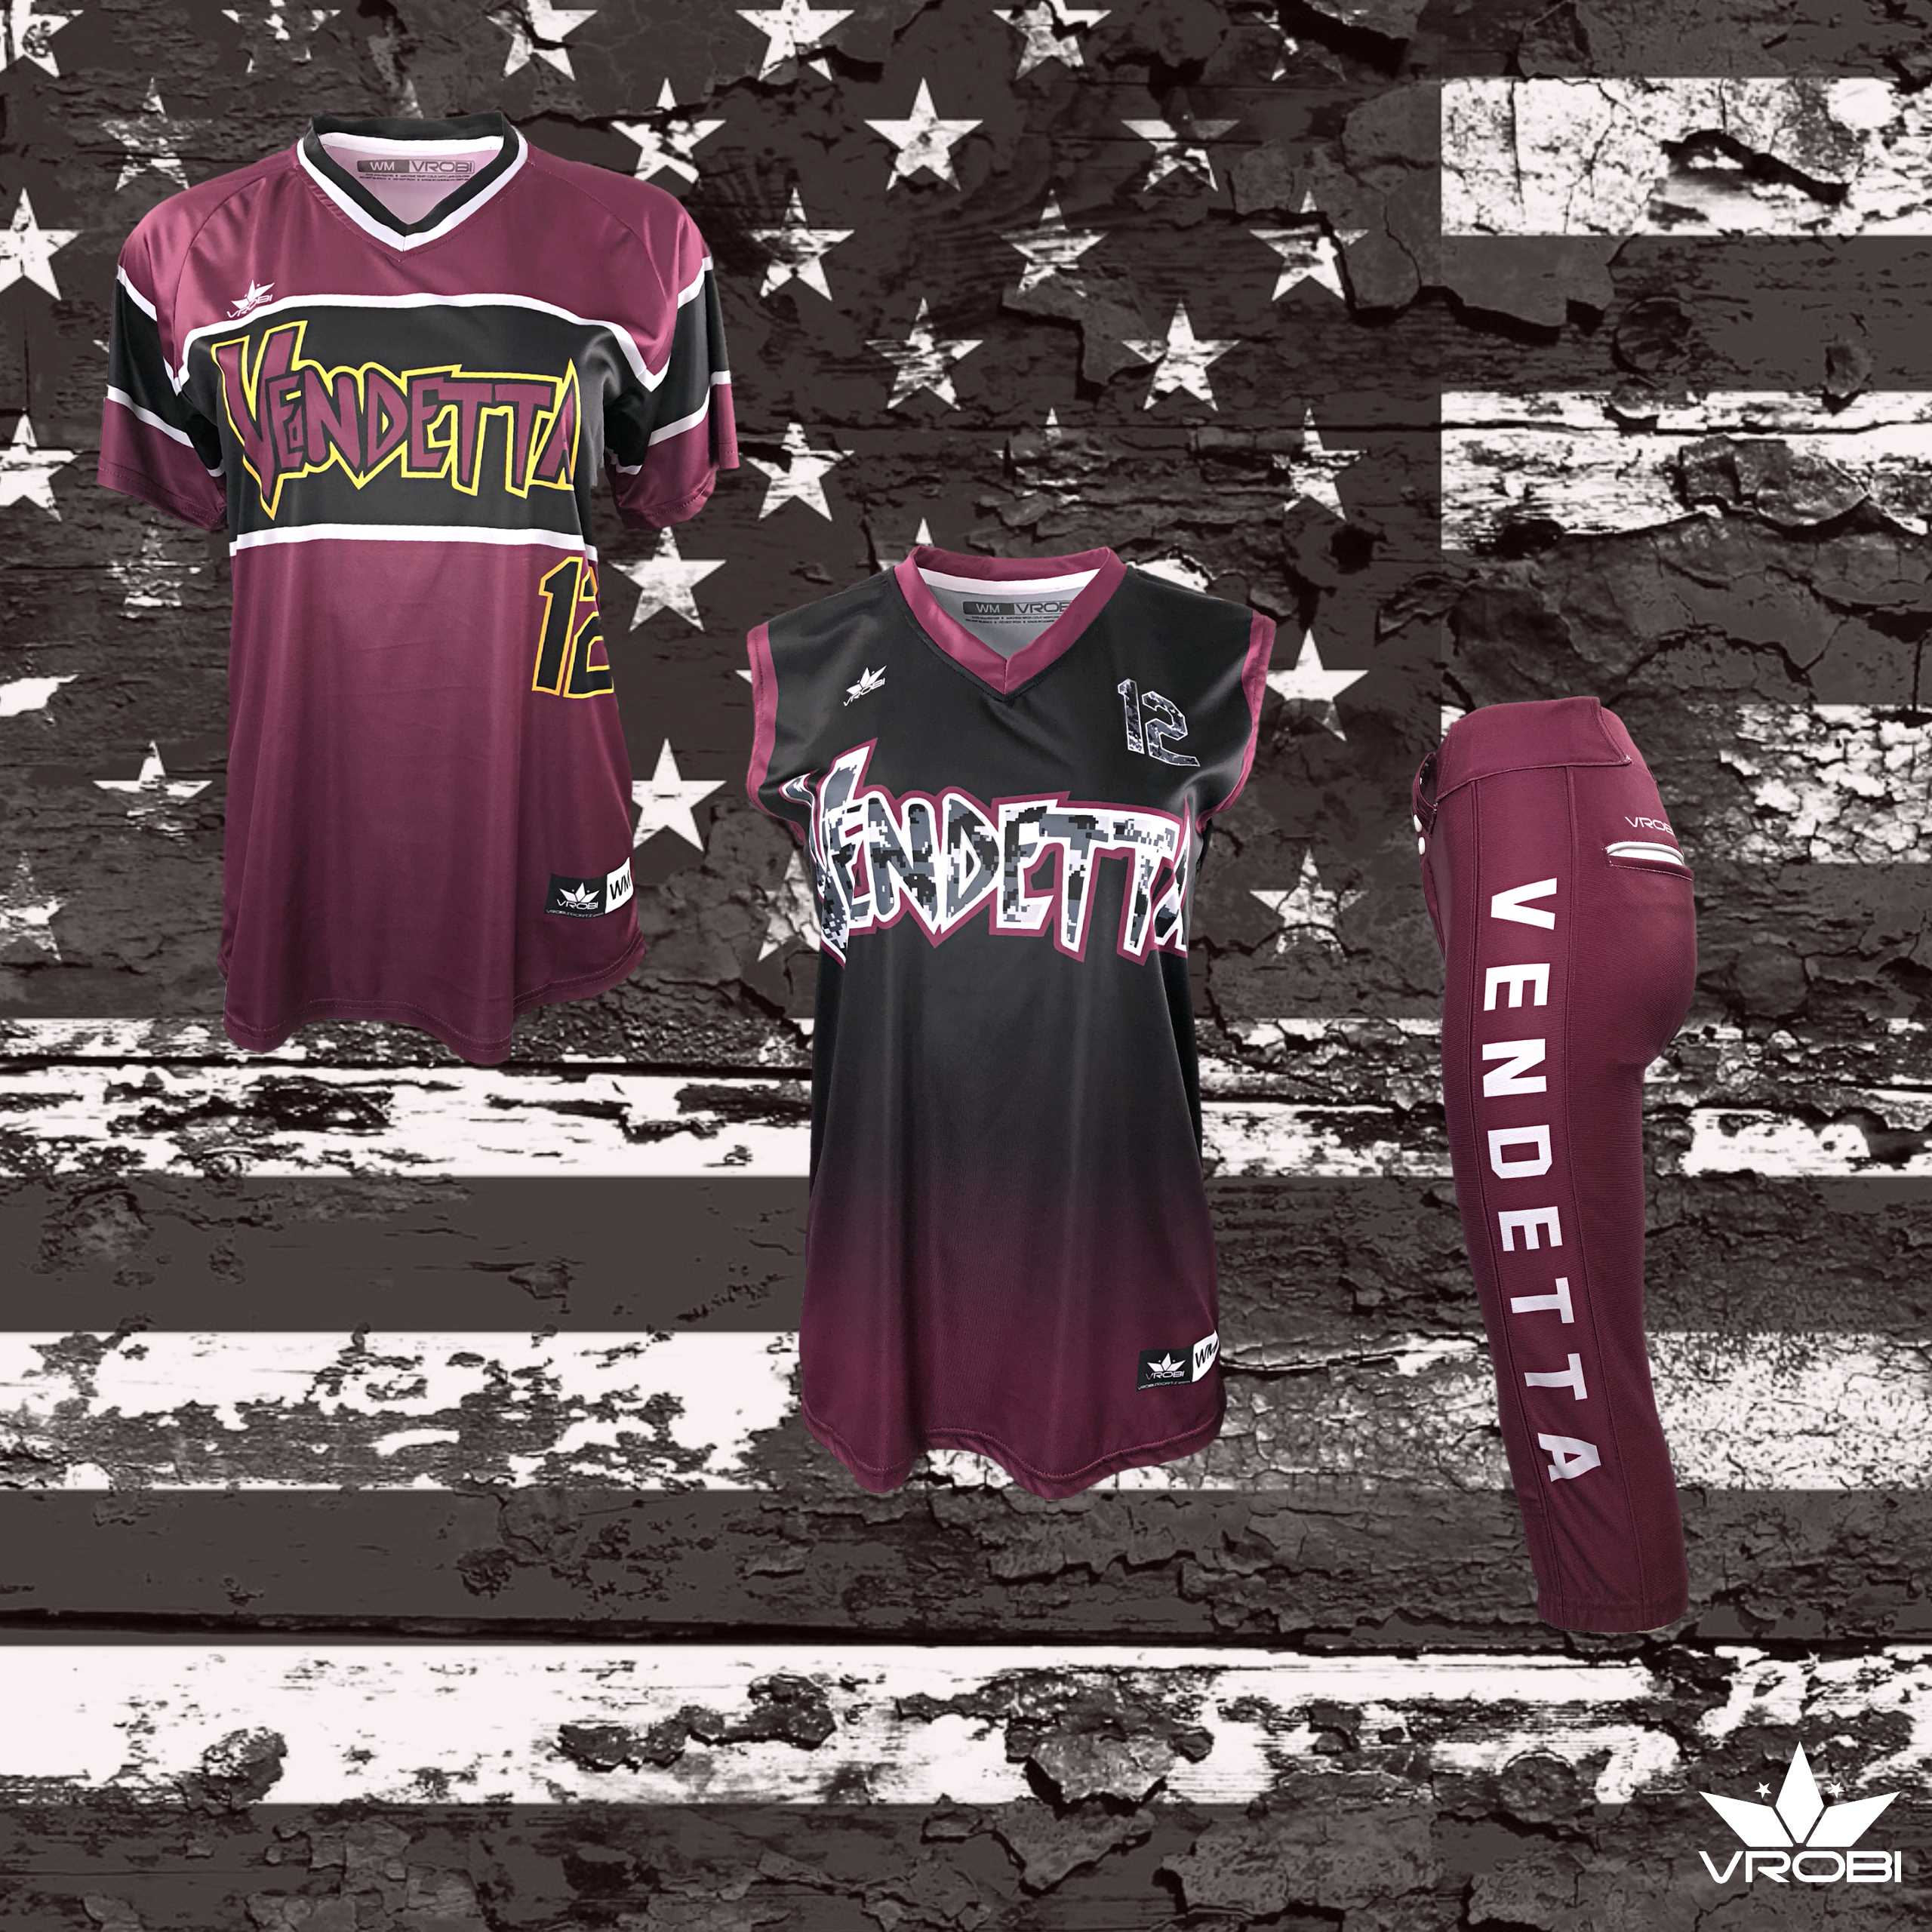 Bronze Team Package for Softball Teams showing Custom Full Due Uniforms and Bat Pack